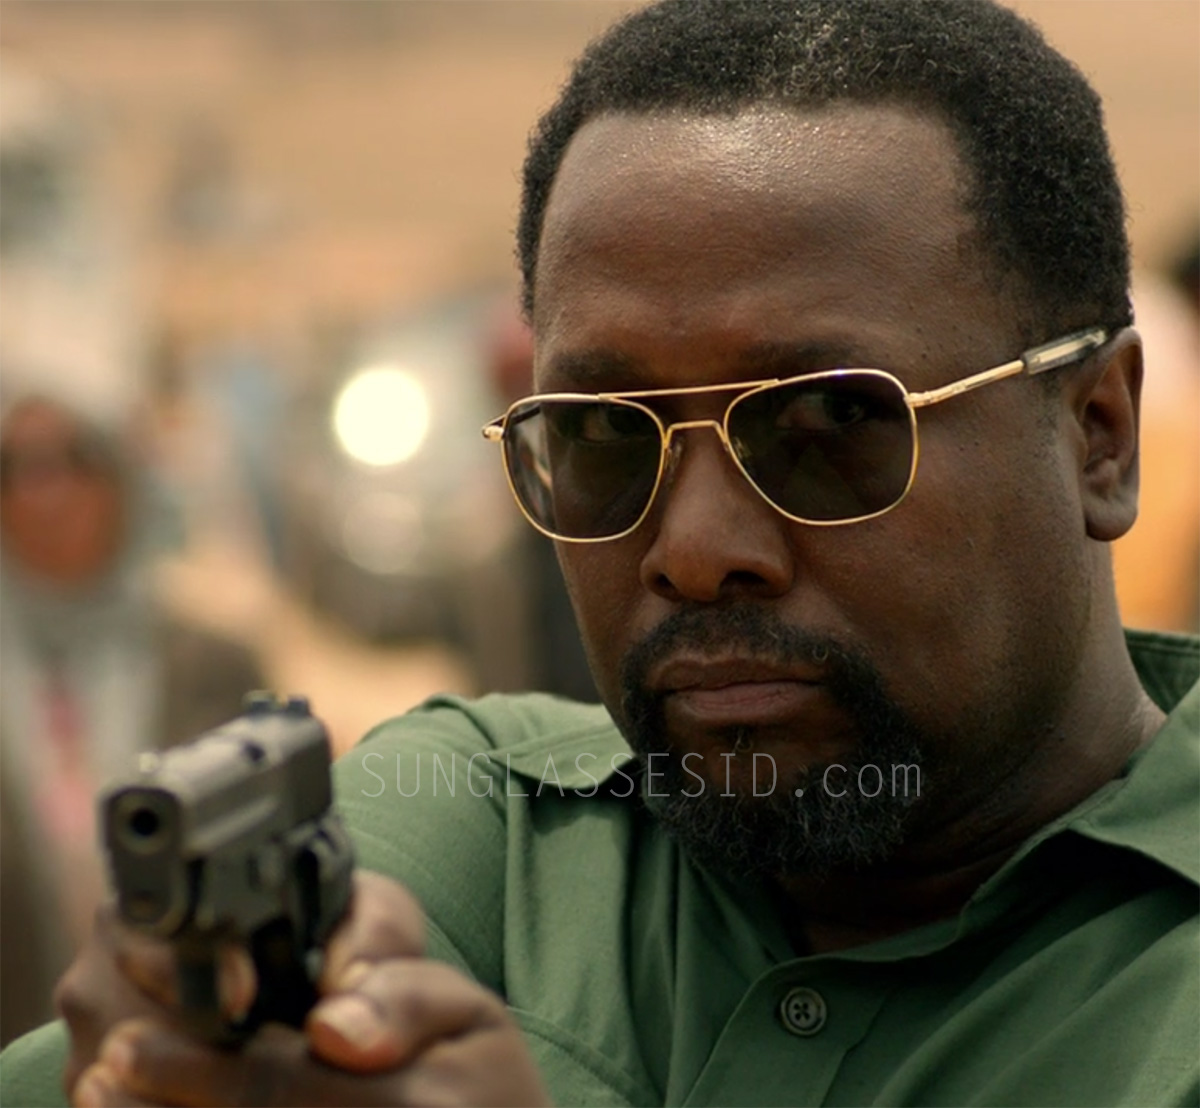 Wendell Pierce wears RE Aviator sunglasses in episode 6 of the Amazon Prime series Jack Ryan.Wendell Pierce wears RE Aviator sunglasses in episode 6, where they look gold.